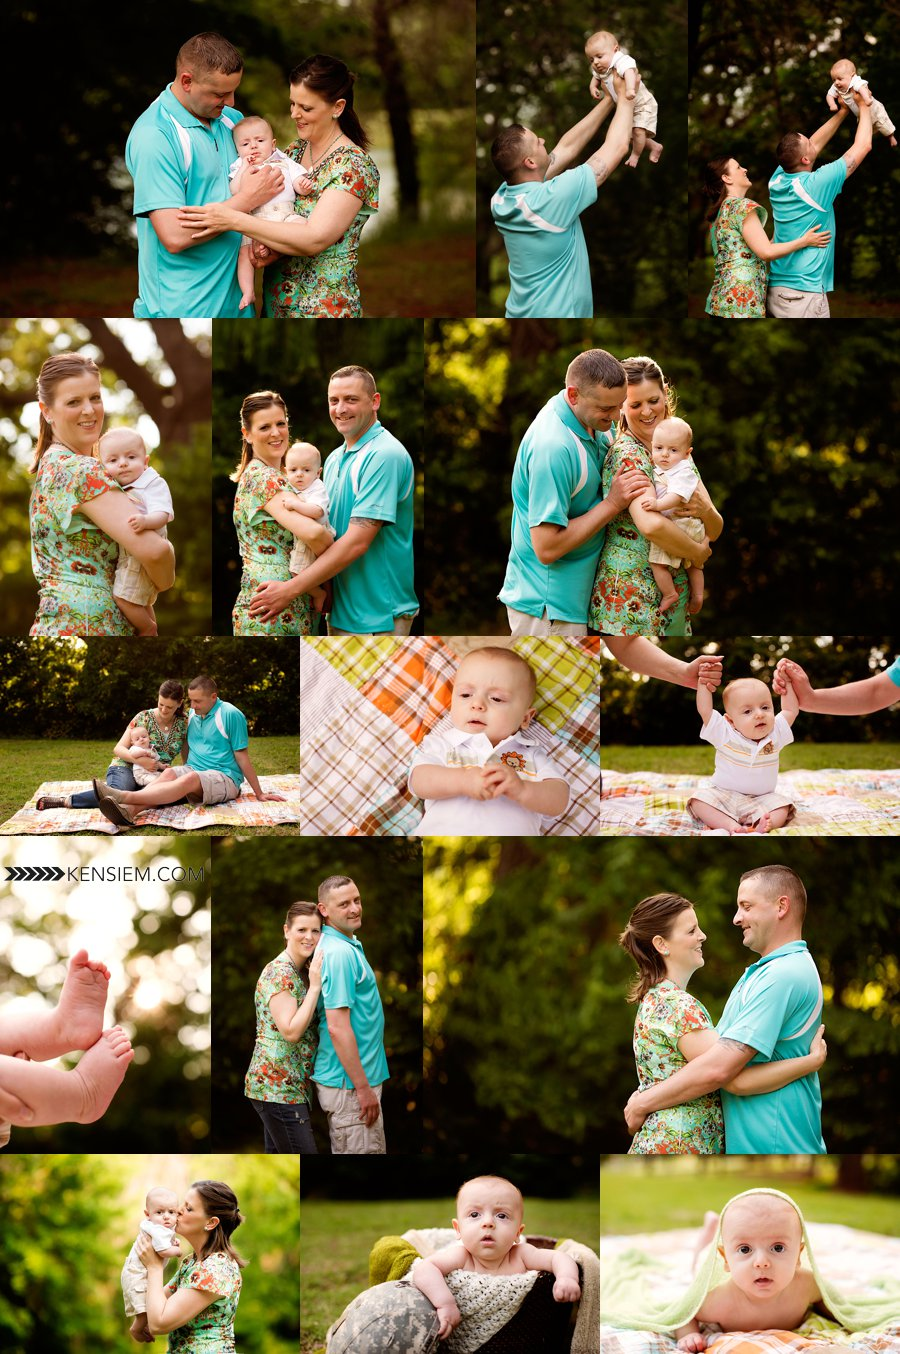 Sweet family photos of family of three. Mom, Dad, and baby boy.